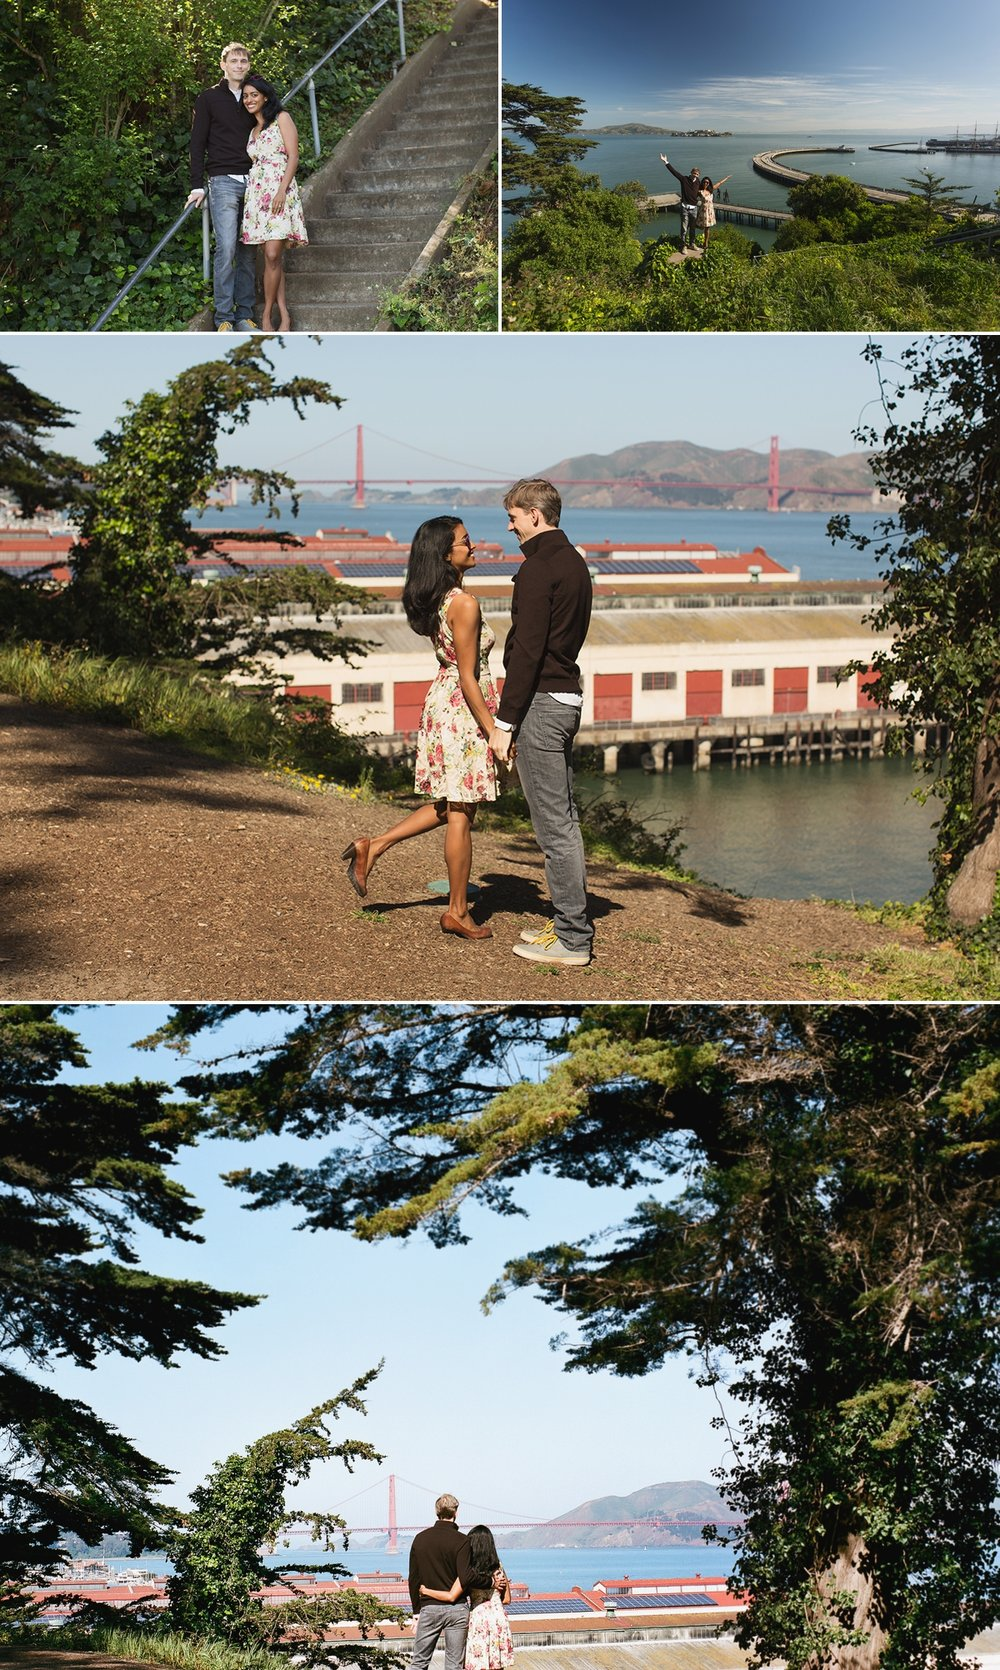 Engagement photos at Black Point Battery in San Francisco's Fort Mason, where Zach and Serina later were married!